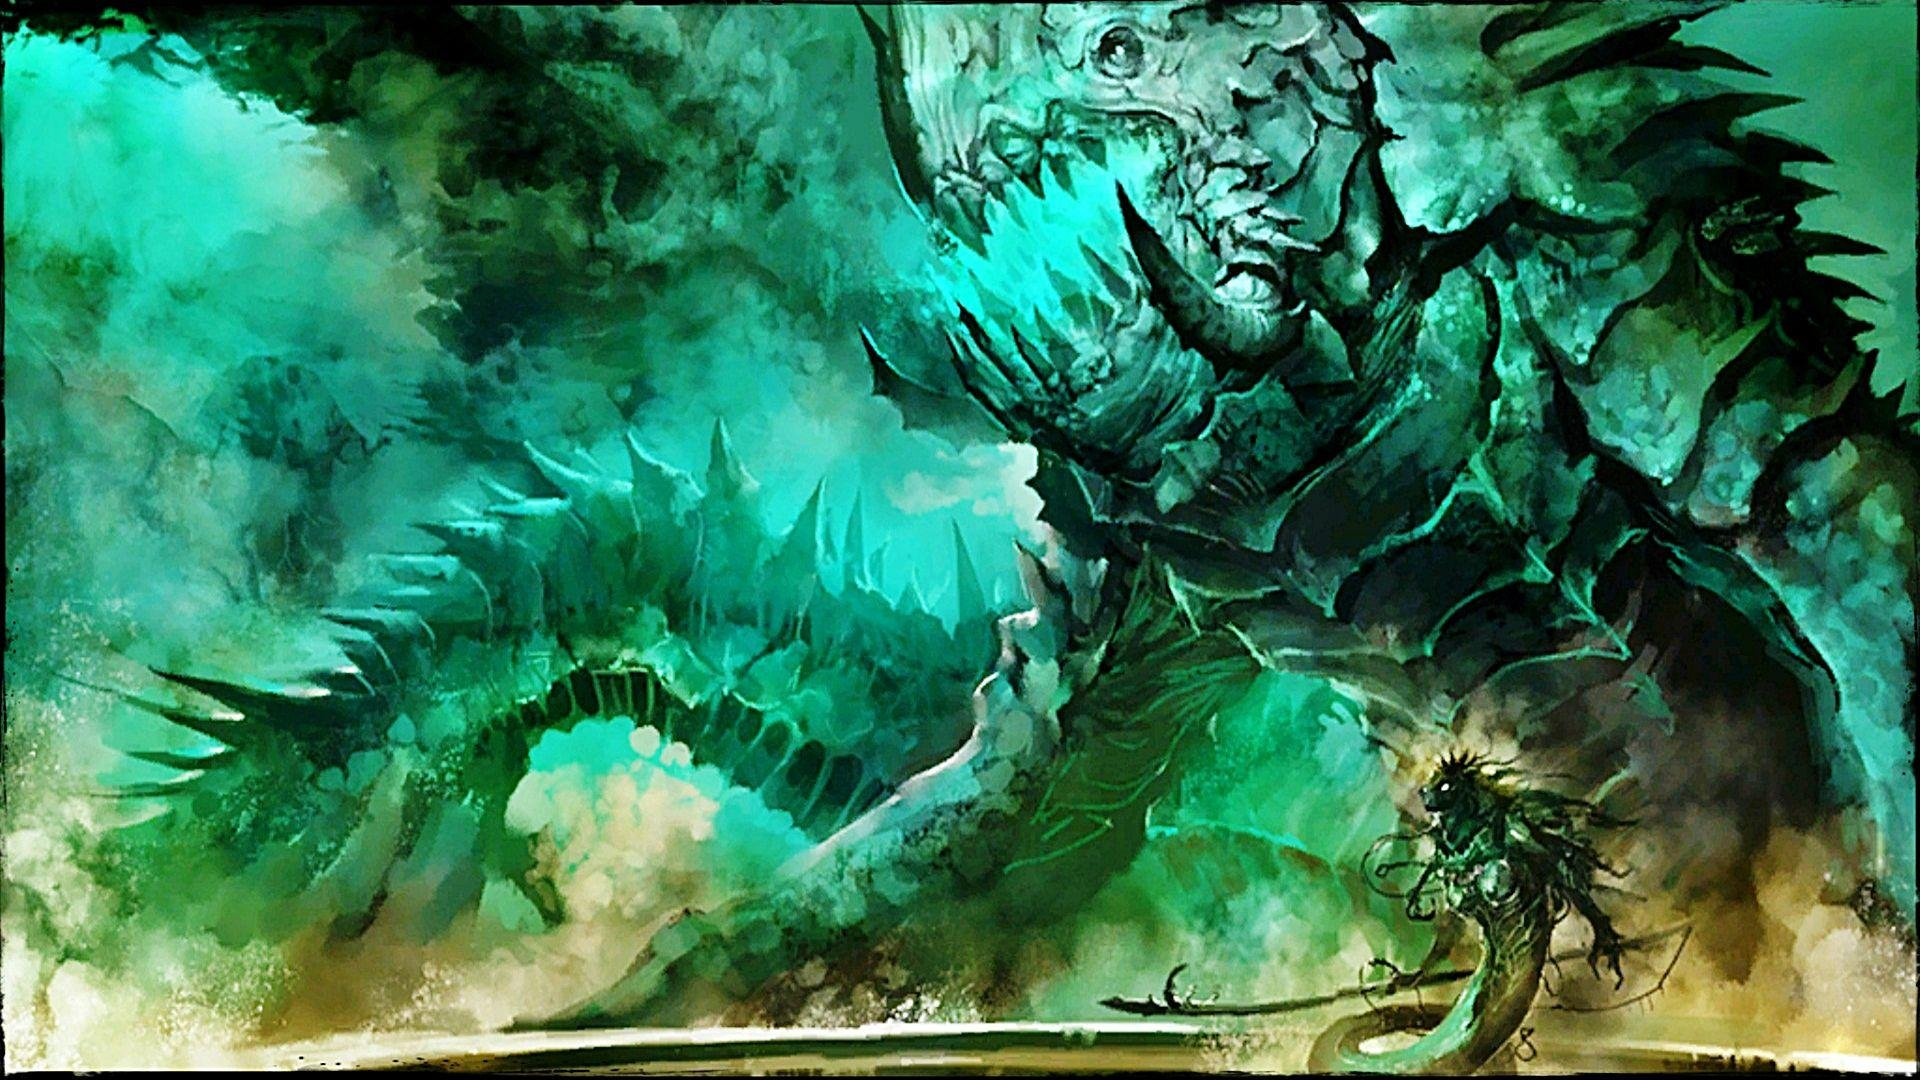 Guild Wars 2 Full Hd Wallpaper And Background Image: Guild Wars 2 Wallpaper